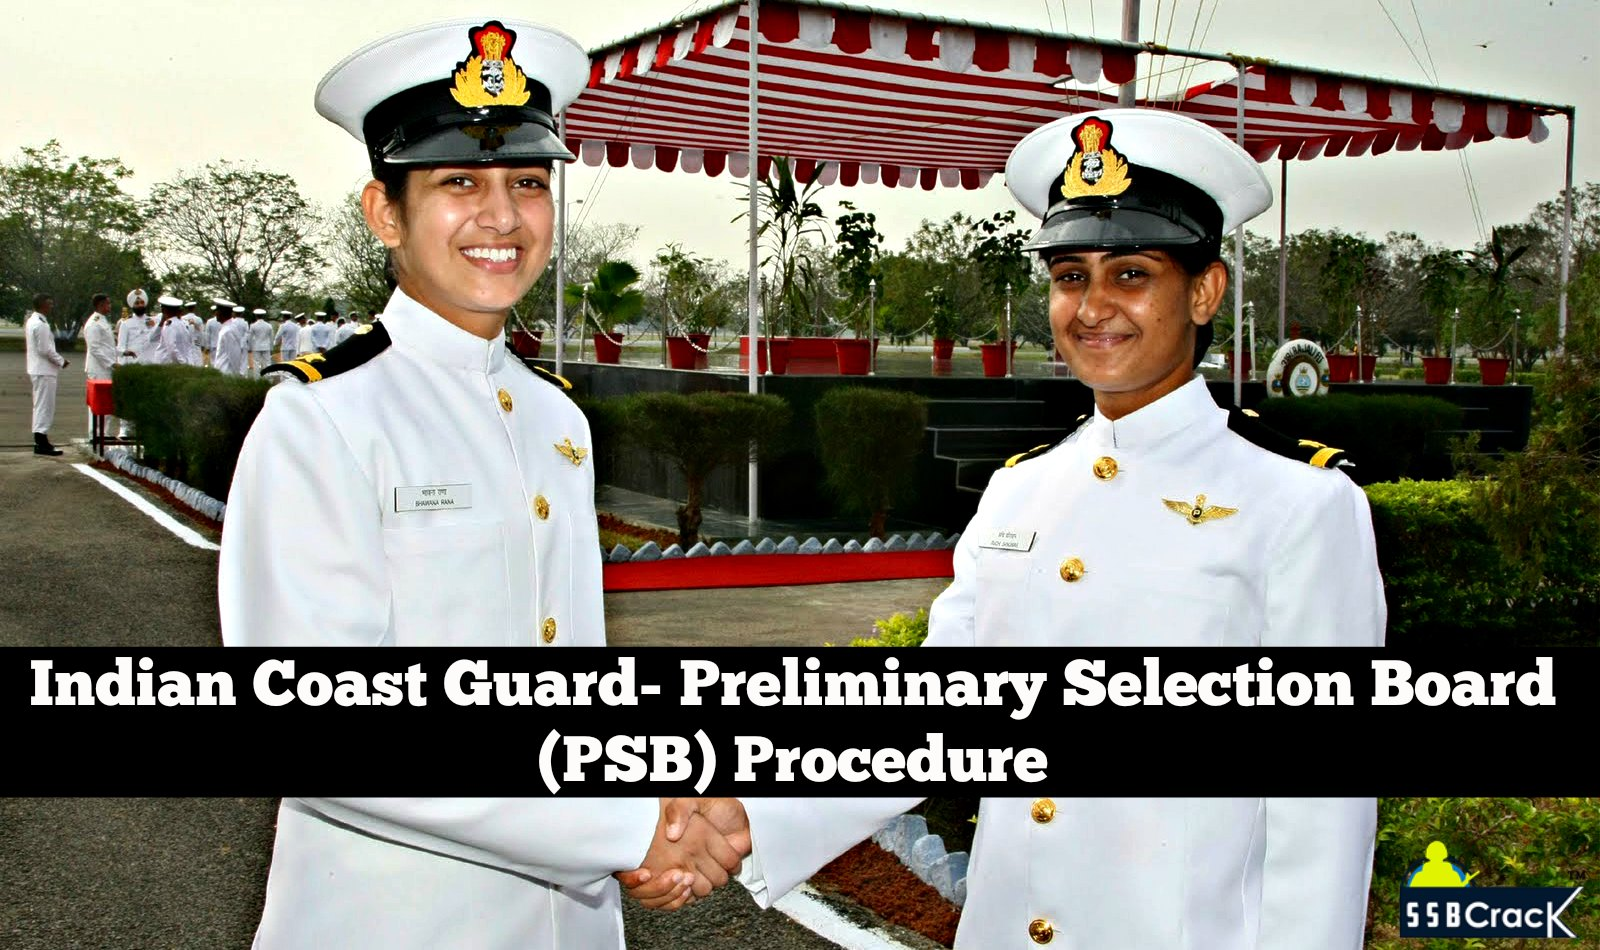 Indian Coast Guard- Preliminary Selection Board (PSB) Procedure